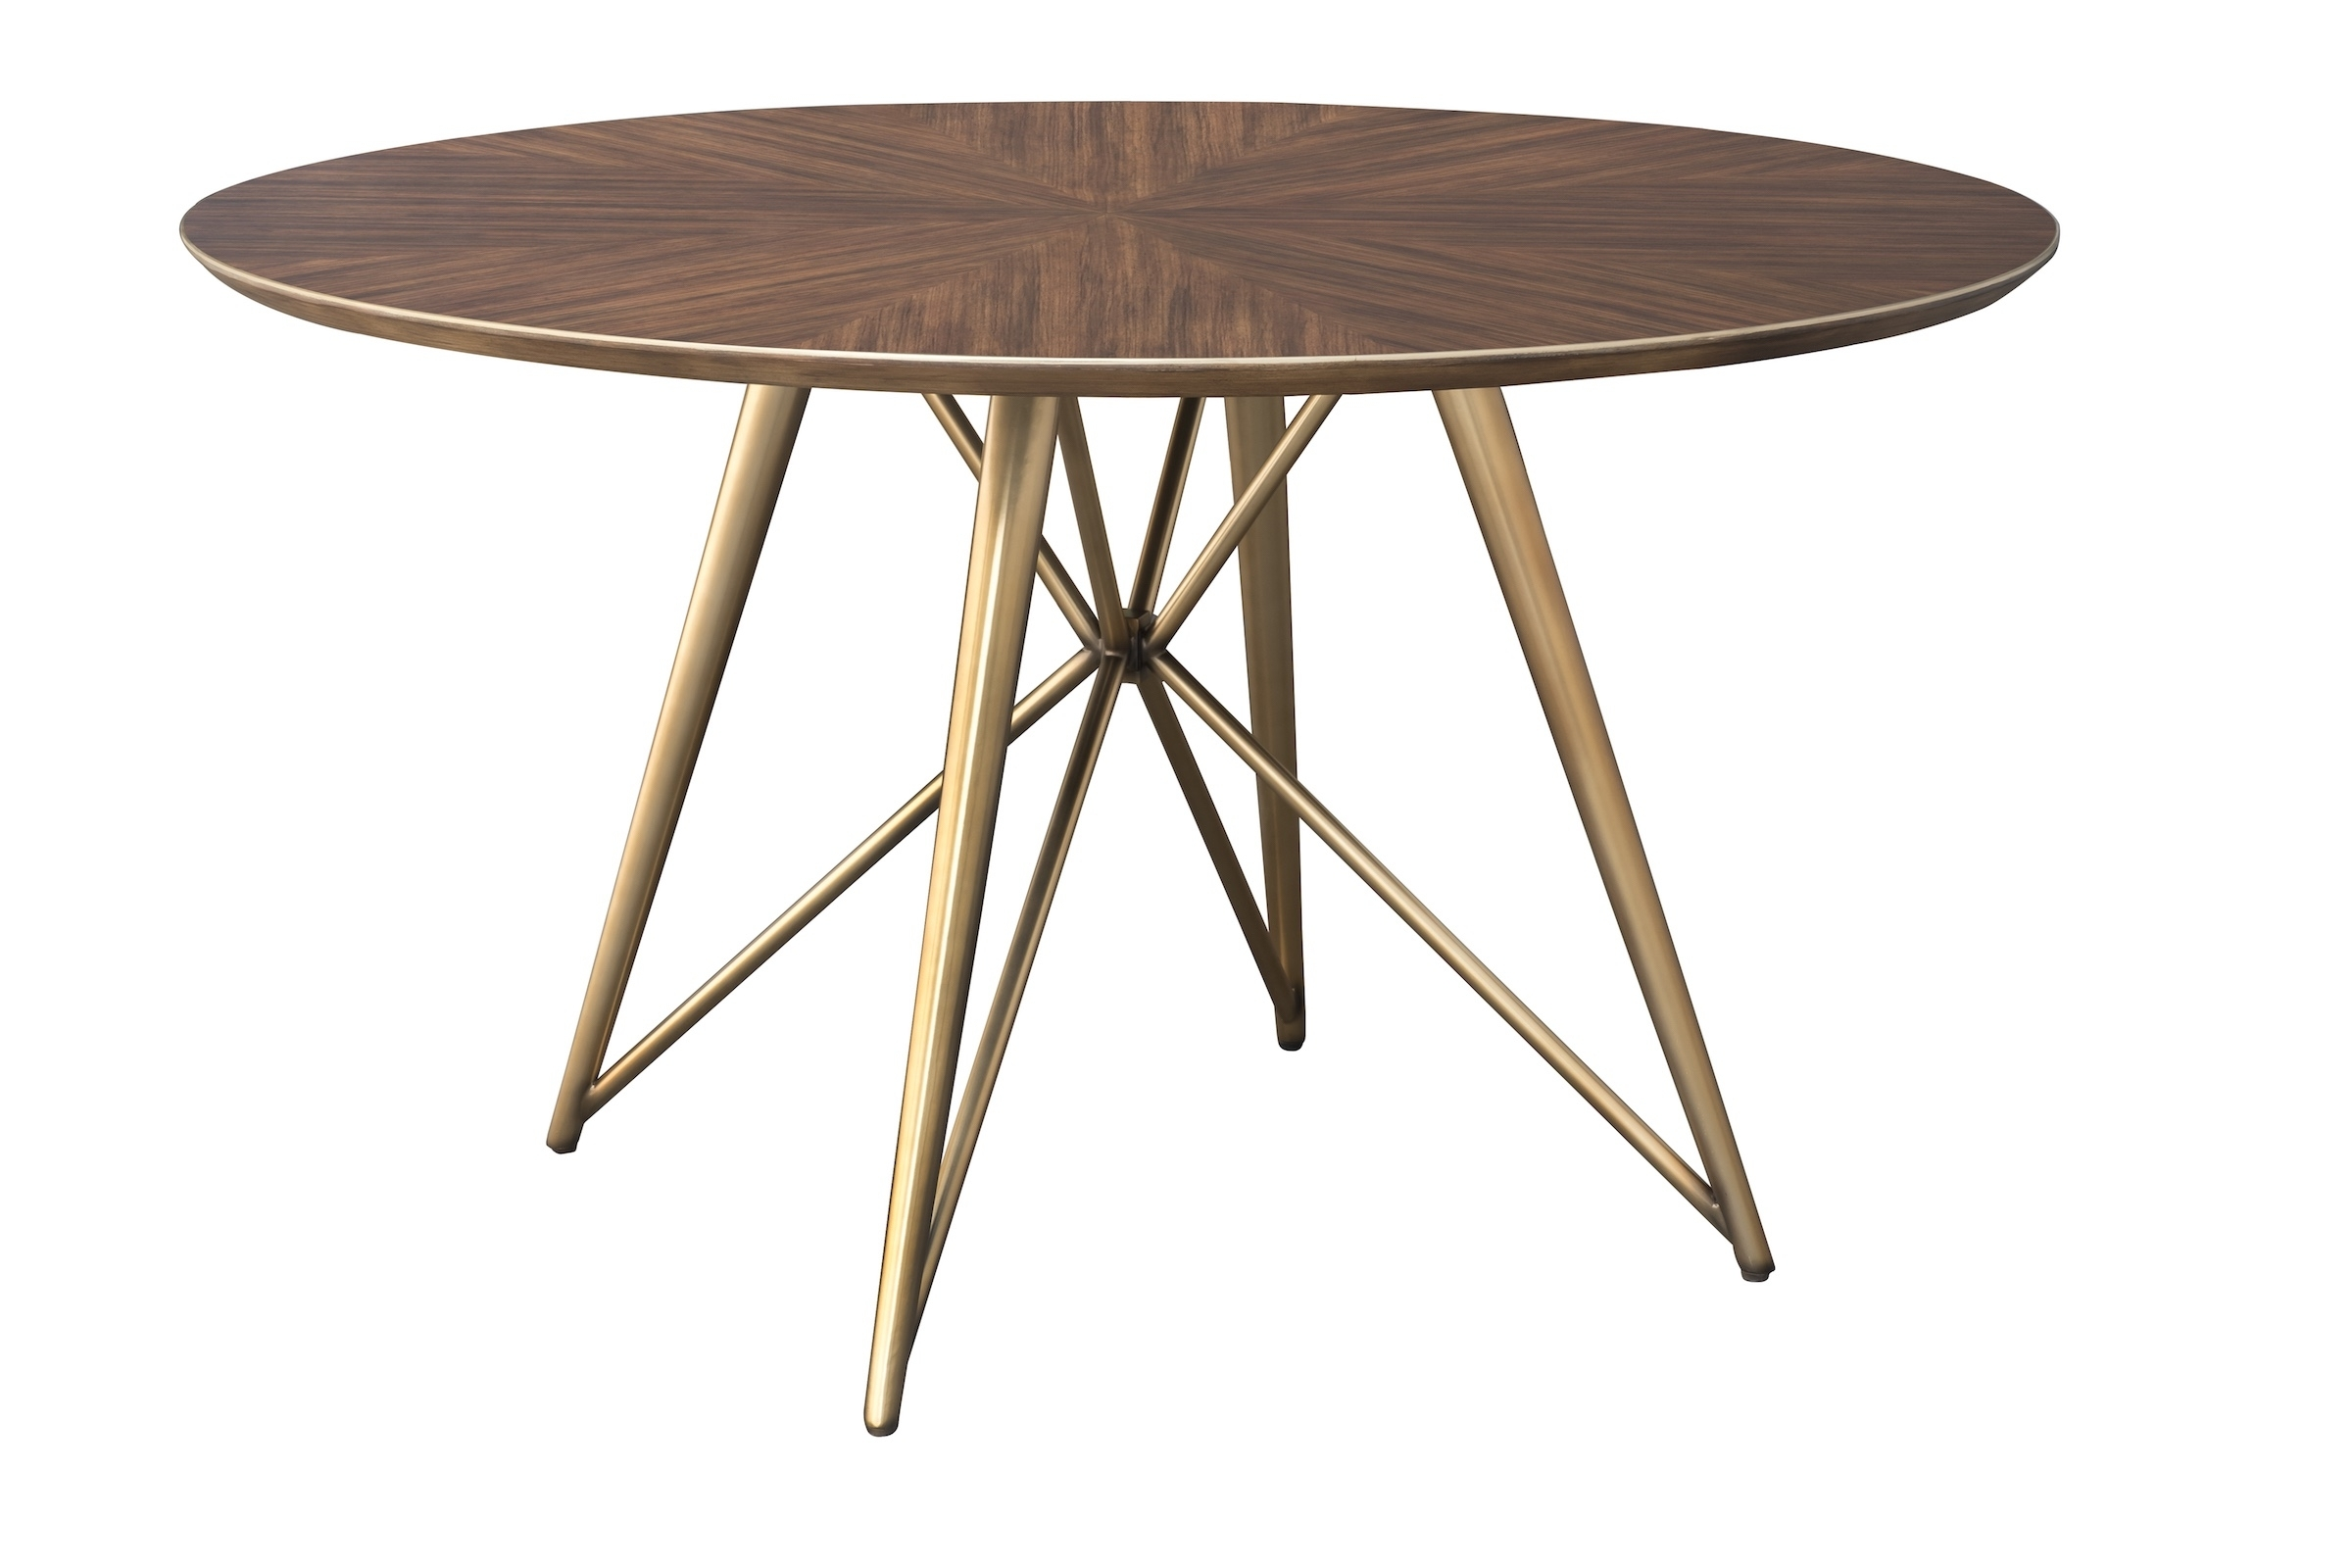 Konrad 60 Inch Round Wood And Brass Round Dining Table Within Most Popular Portland 78 Inch Dining Tables (Image 10 of 20)